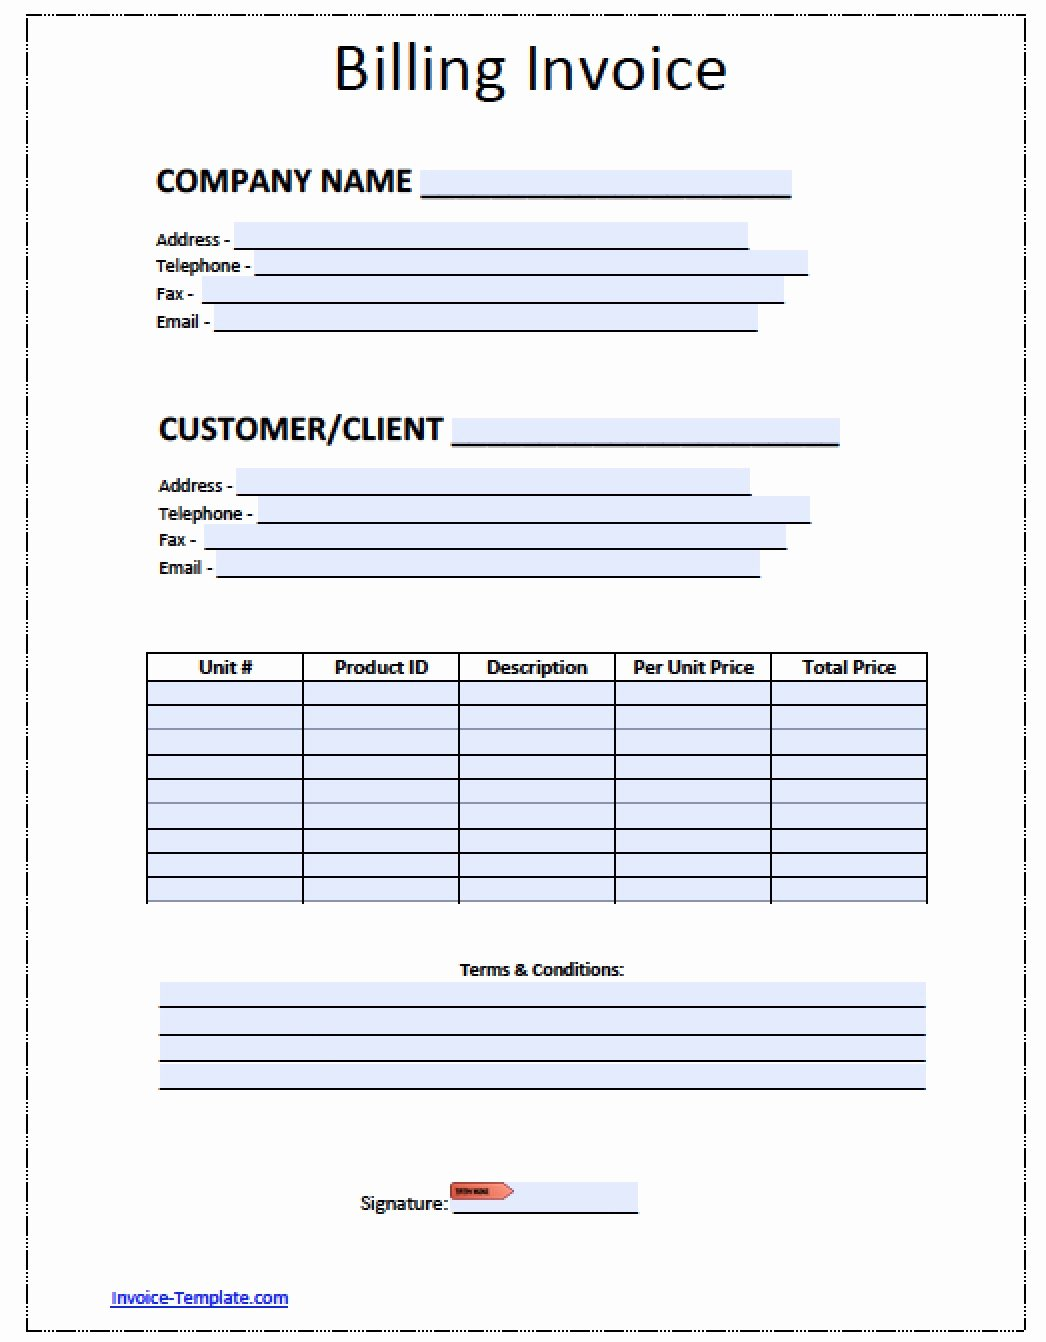 Blank Invoice Template Word Best Of Free Blank Invoice Template for Excel Excel Template